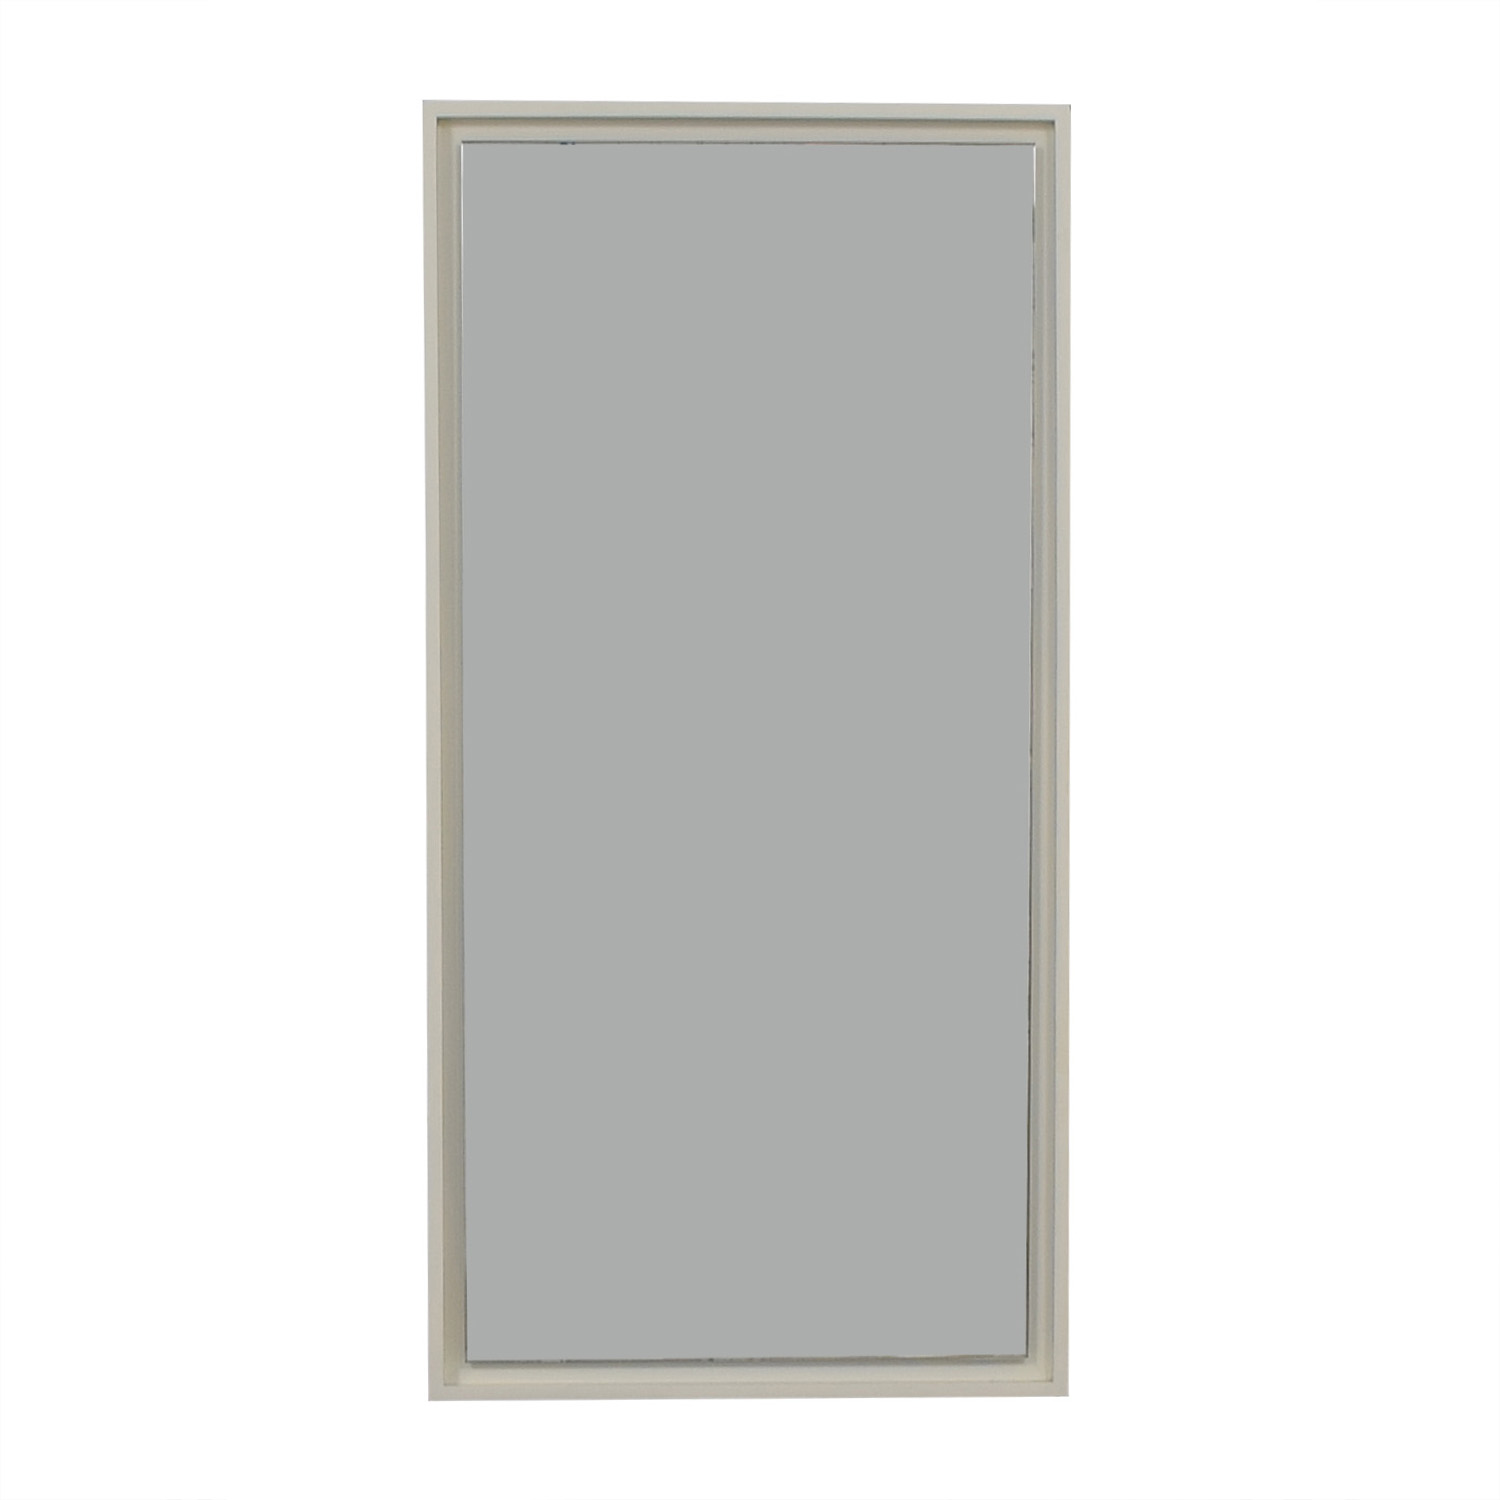 shop West Elm White Lacquer Floating Wood Wall Mirror West Elm Decor